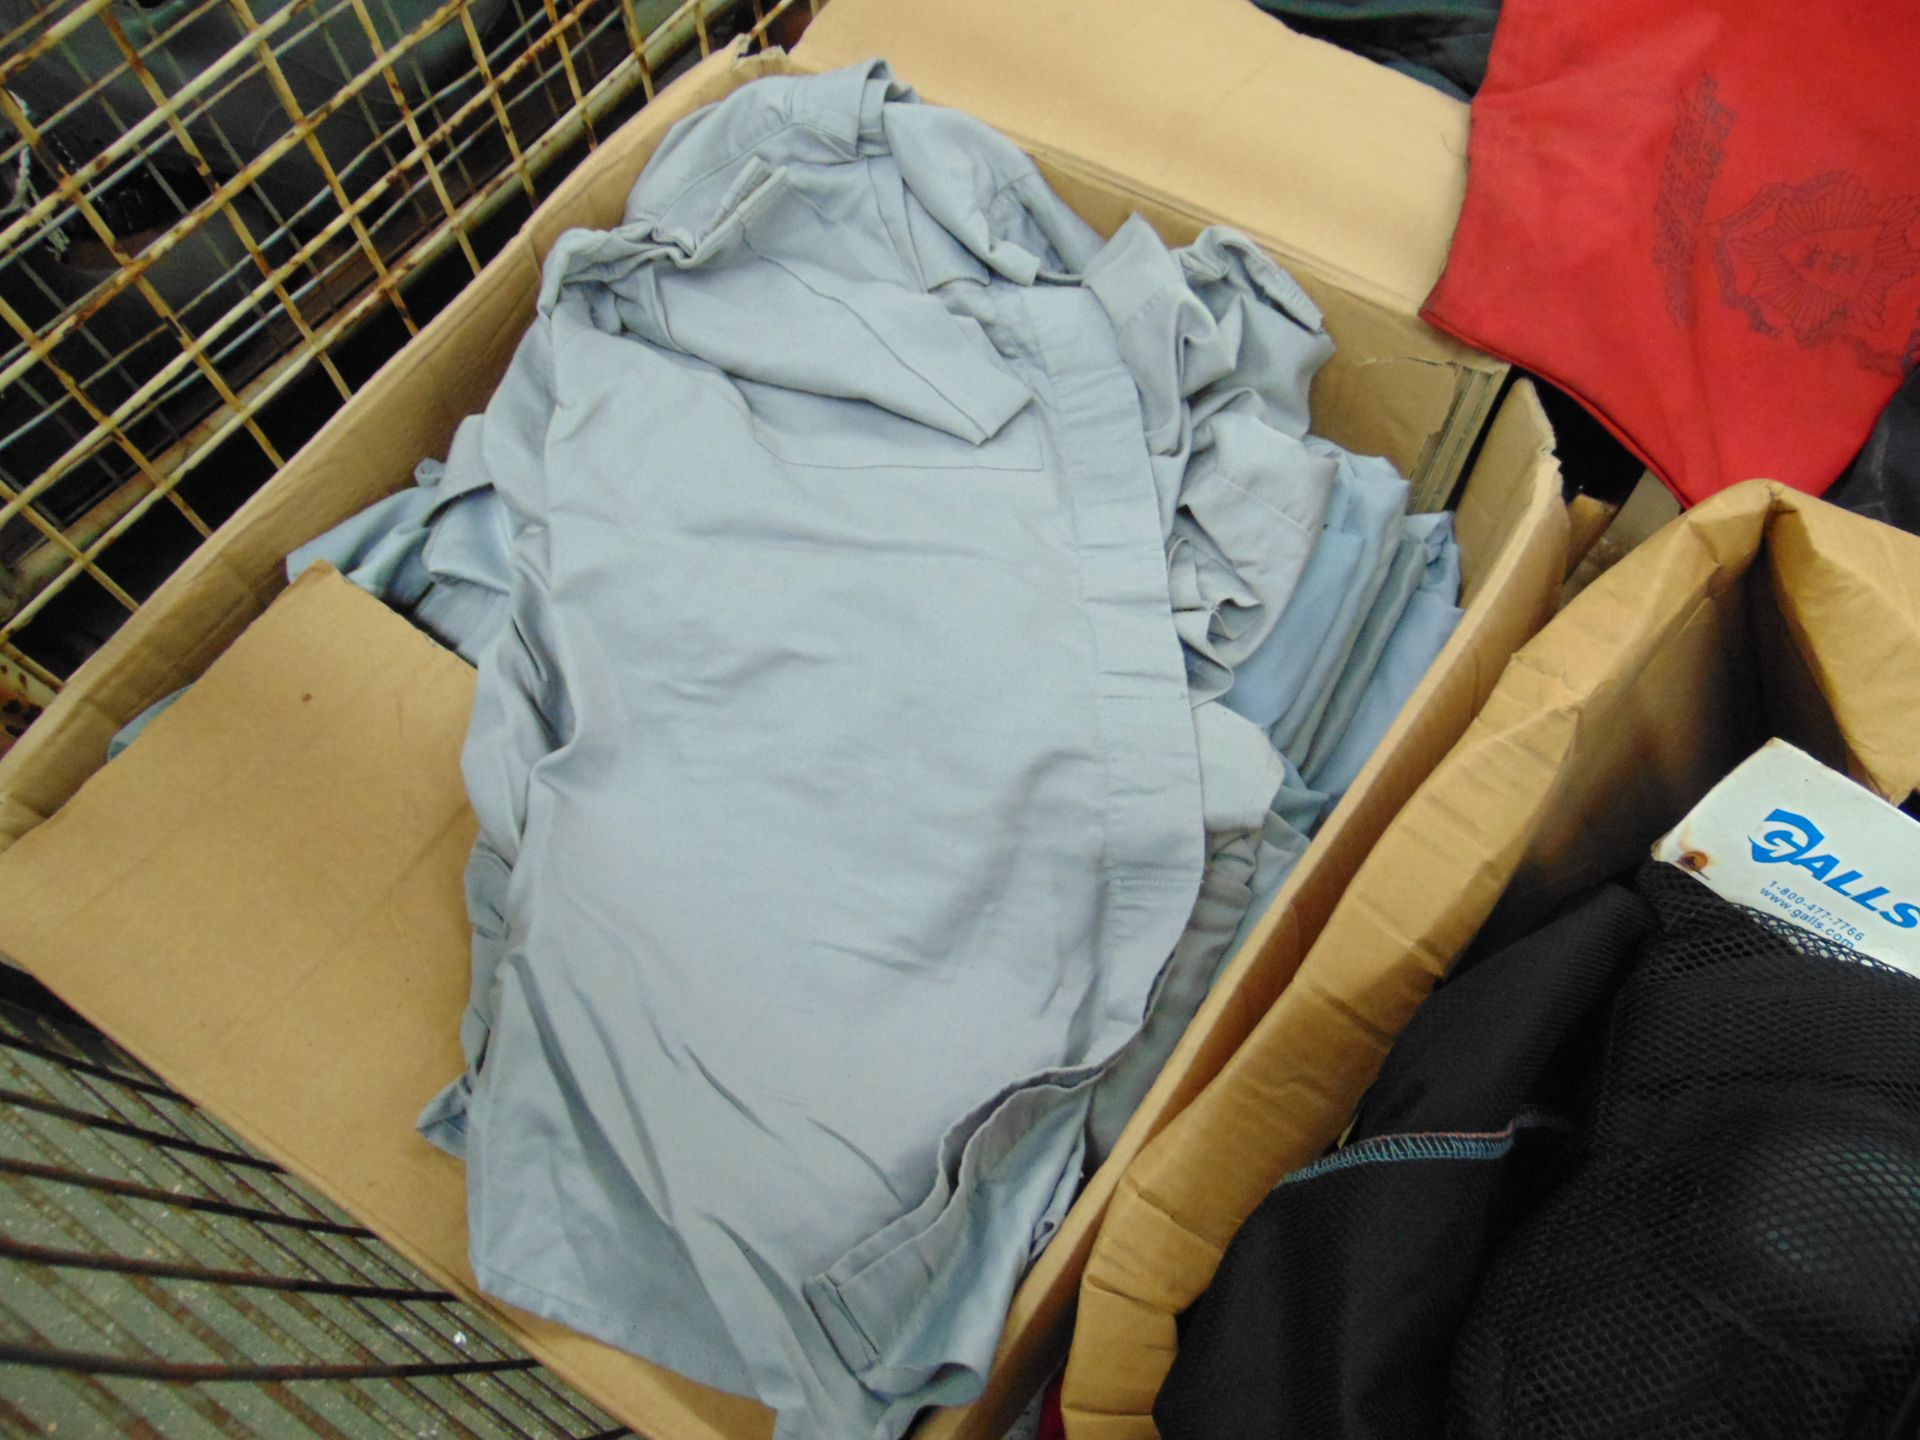 Mixed Clothing including Shirts, T shirts, Trousers, Fleece Jackets, Knee Pads Etc - Image 2 of 4